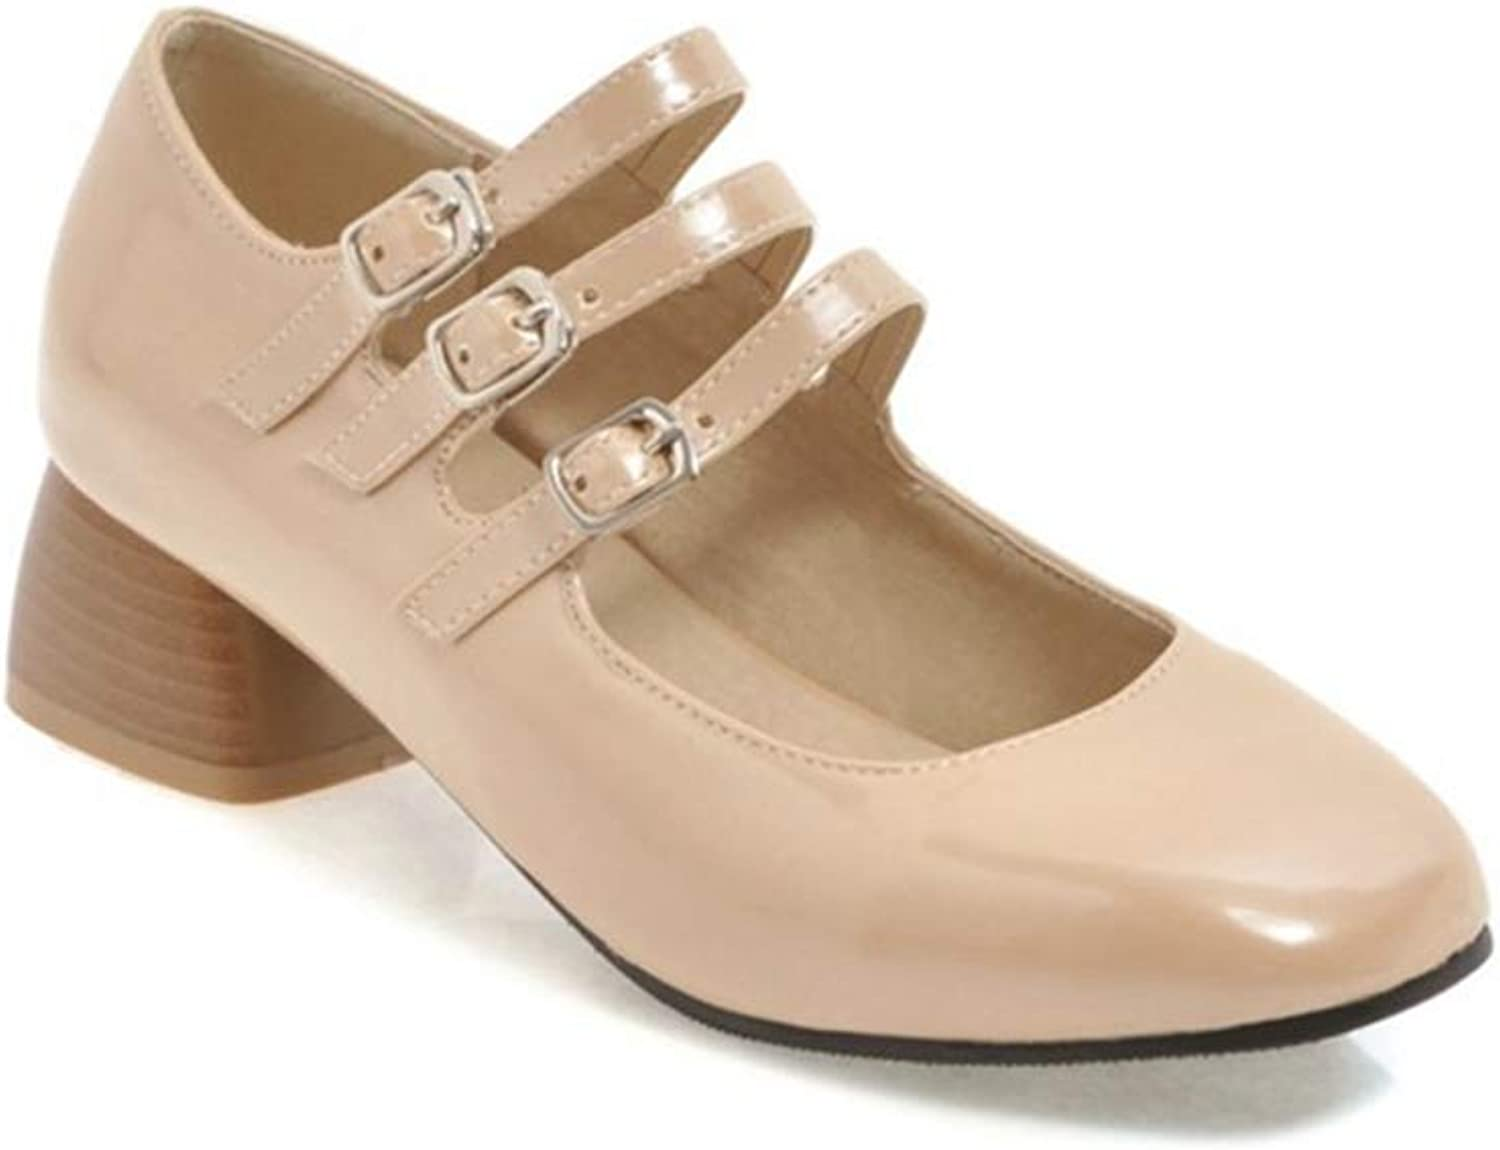 GIY Women's Classic Mary Jane Oxford shoes Retro Square Toe Buckle Strap Mid Heel Dress Pump Loafer shoes